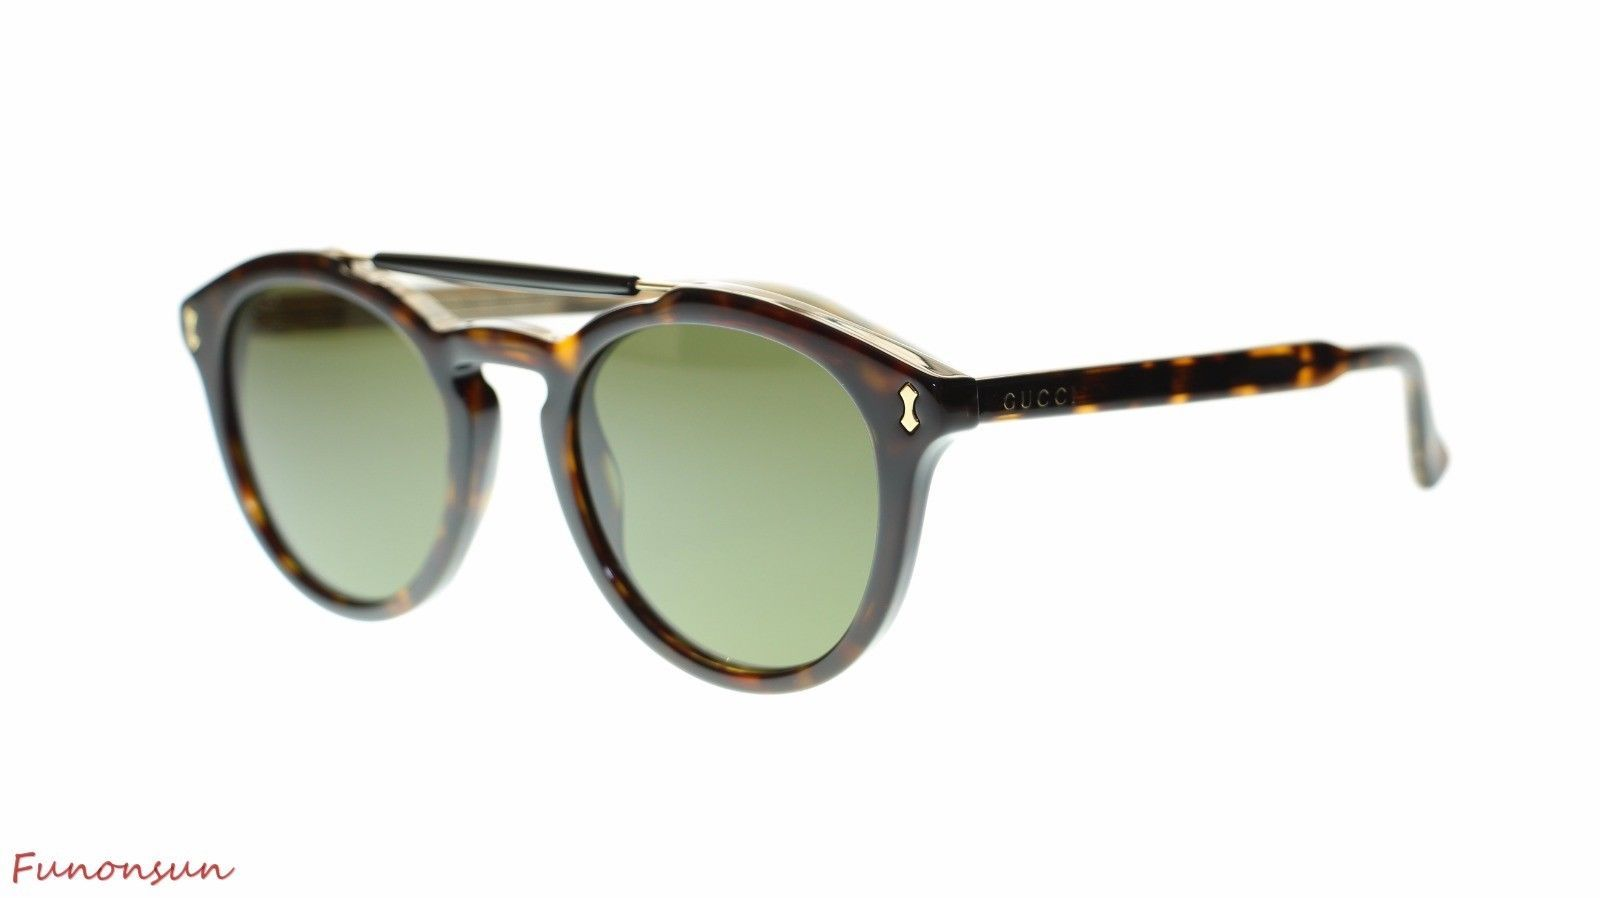 894607b9548a S l1600. S l1600. Previous. NEW Gucci Men Round Sunglasses GG0124S 002  Havana/Green Lens 50mm Authentic